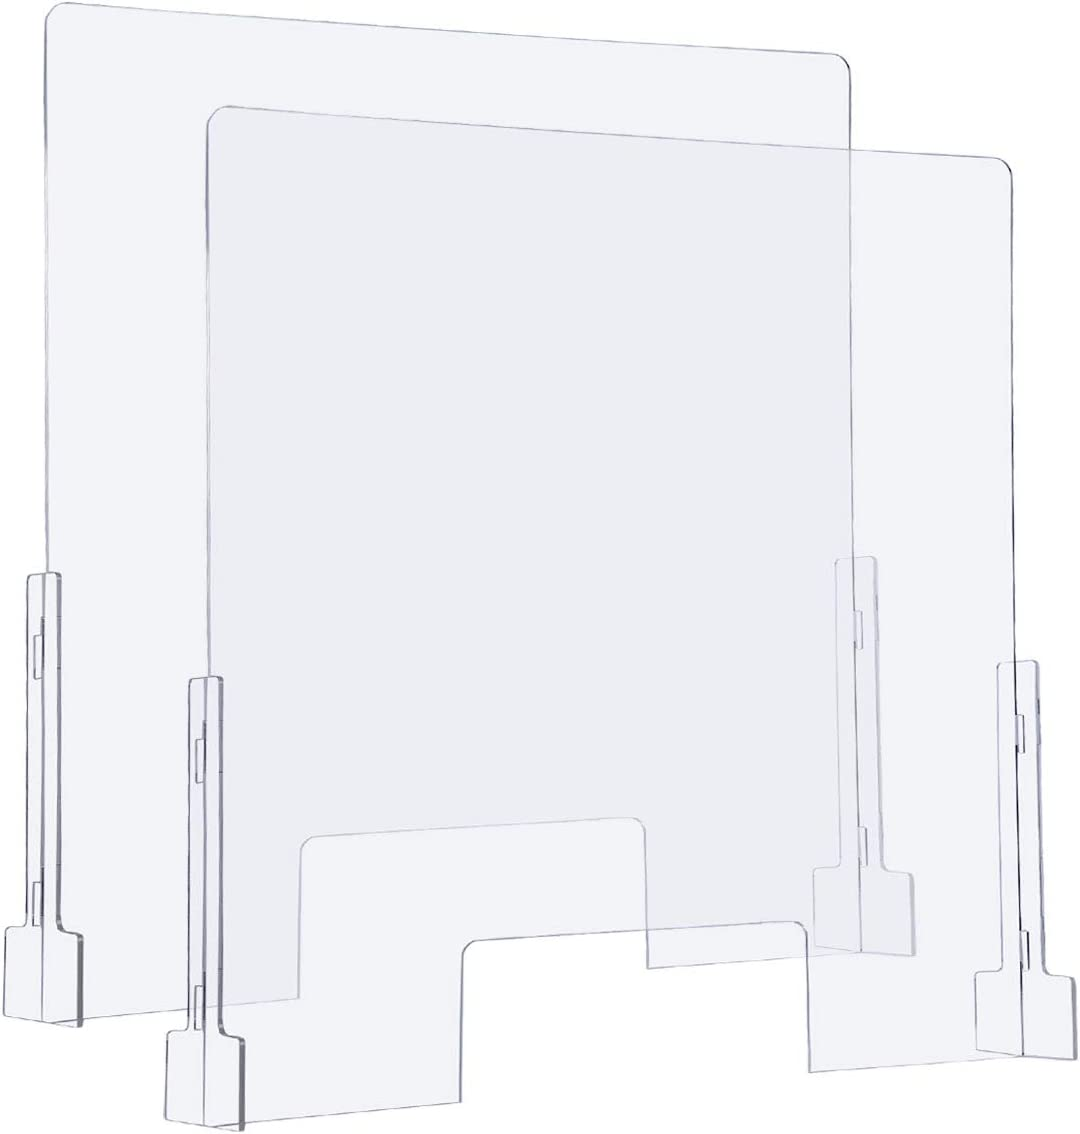 "(2-Pack) Sumerflos Clear Acrylic Sneeze Guard, 31"" x 31"" Protective Plexiglass Shield Barrier for Counter, Cashier, Workers, Reception Desk, Offices, Banks"